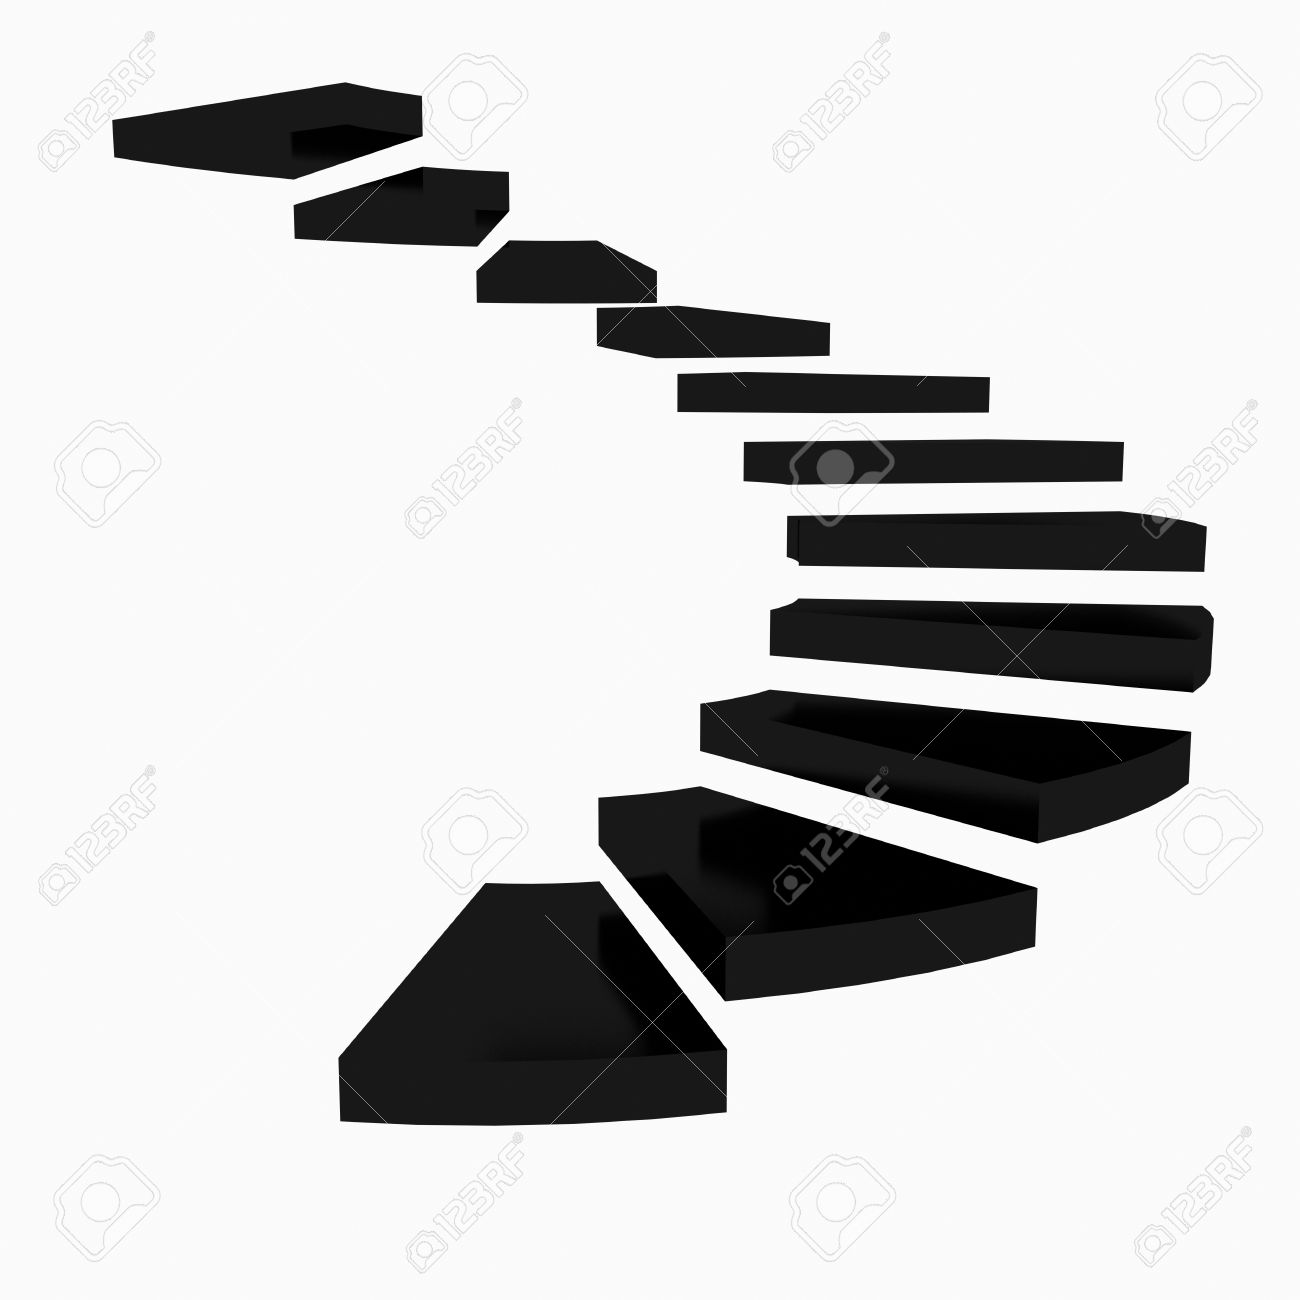 Stairs clipart black and white 3 » Clipart Station.